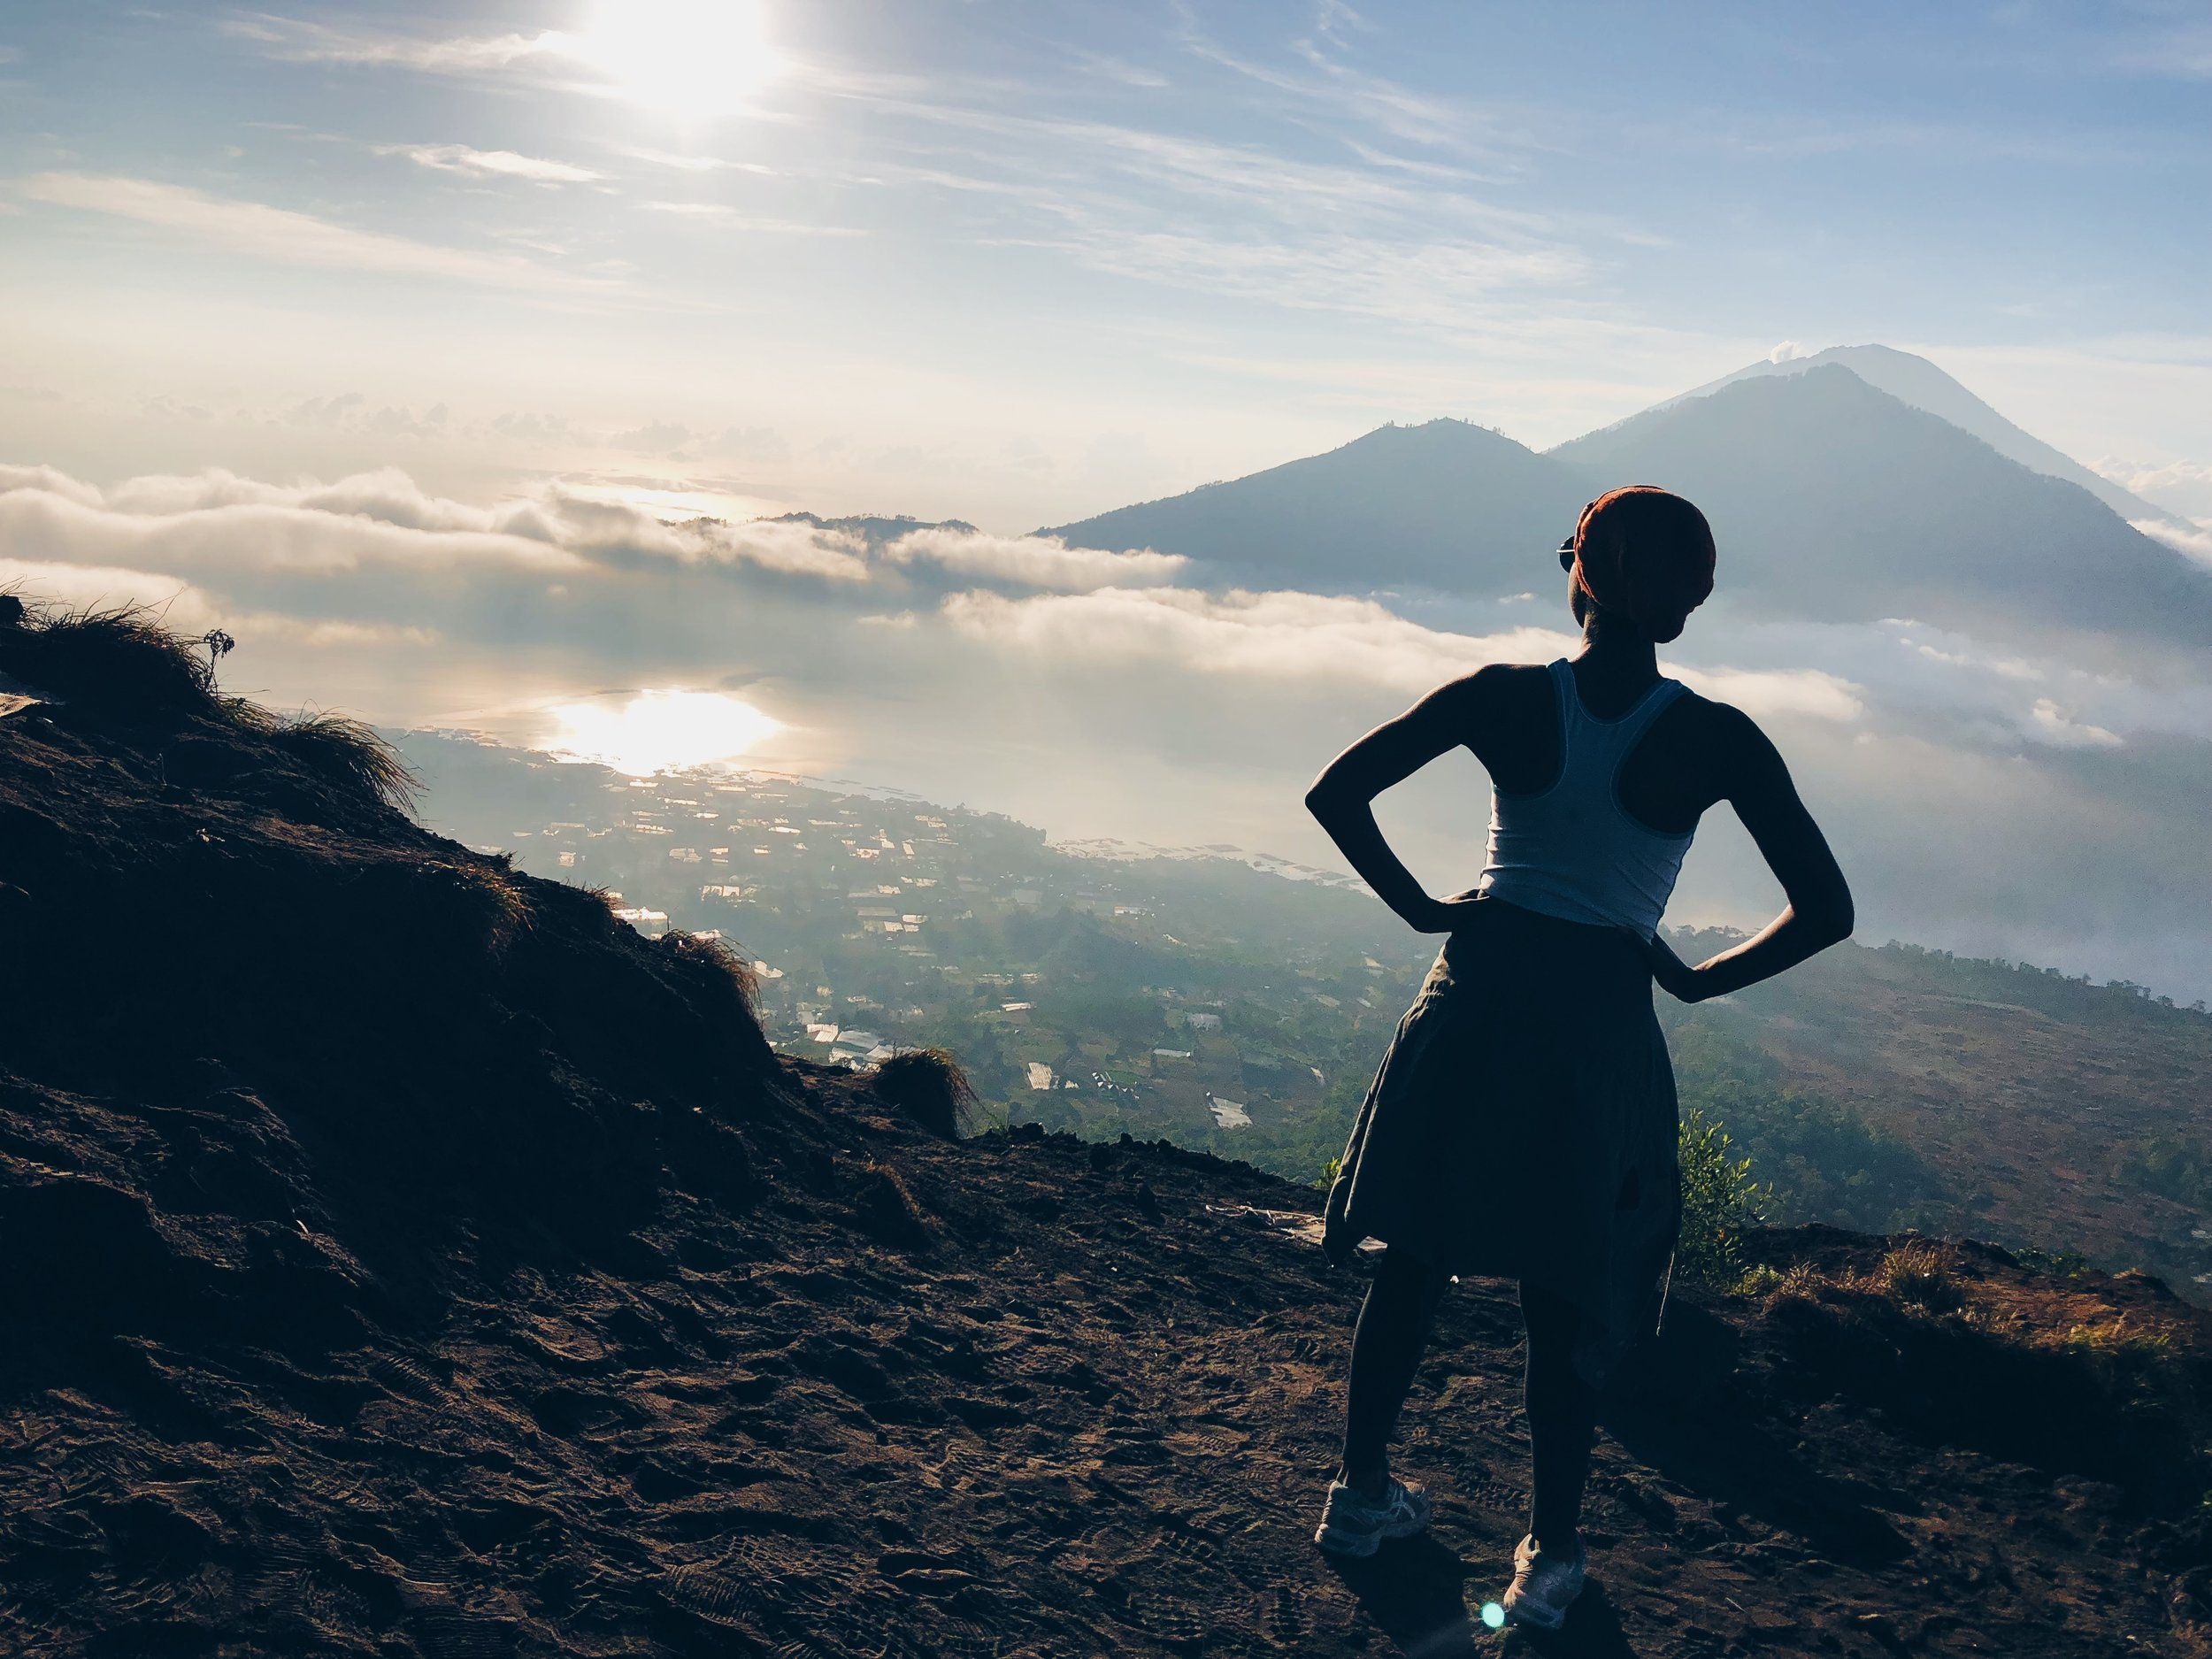 Sunrise Trek on Mt. Batur